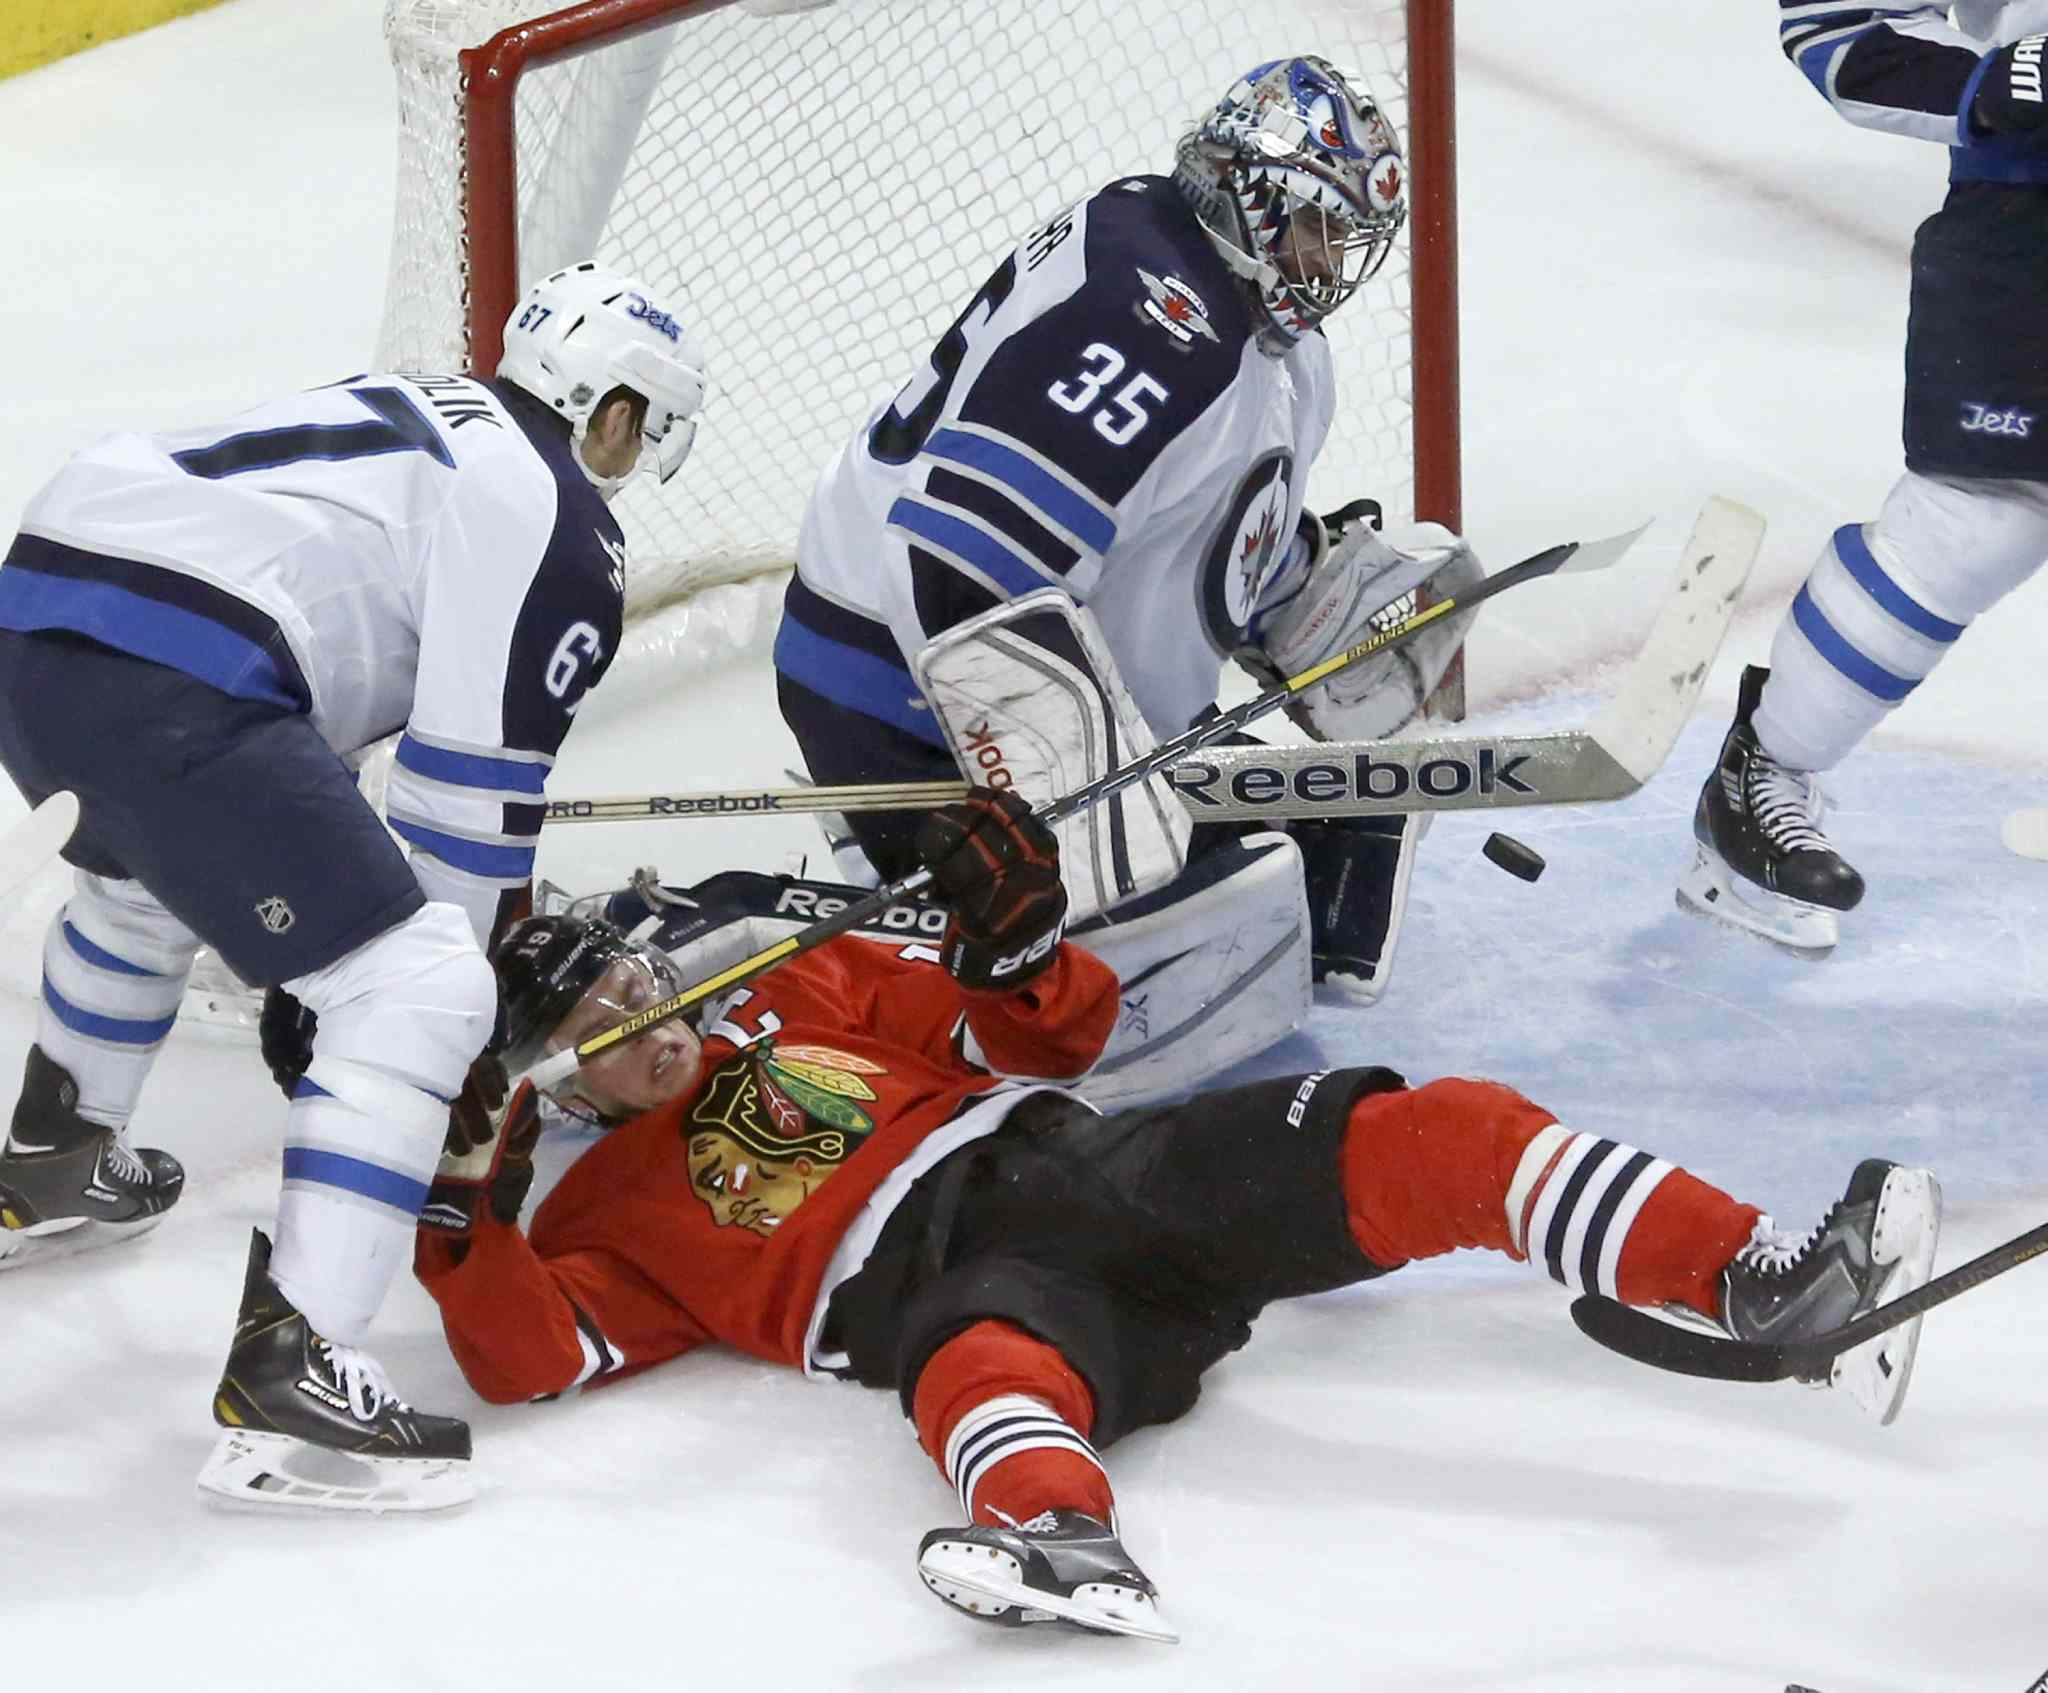 Jets goalie Al Montoya (35) makes a save with Blackhawks captain Jonathan Toews crowding the net.